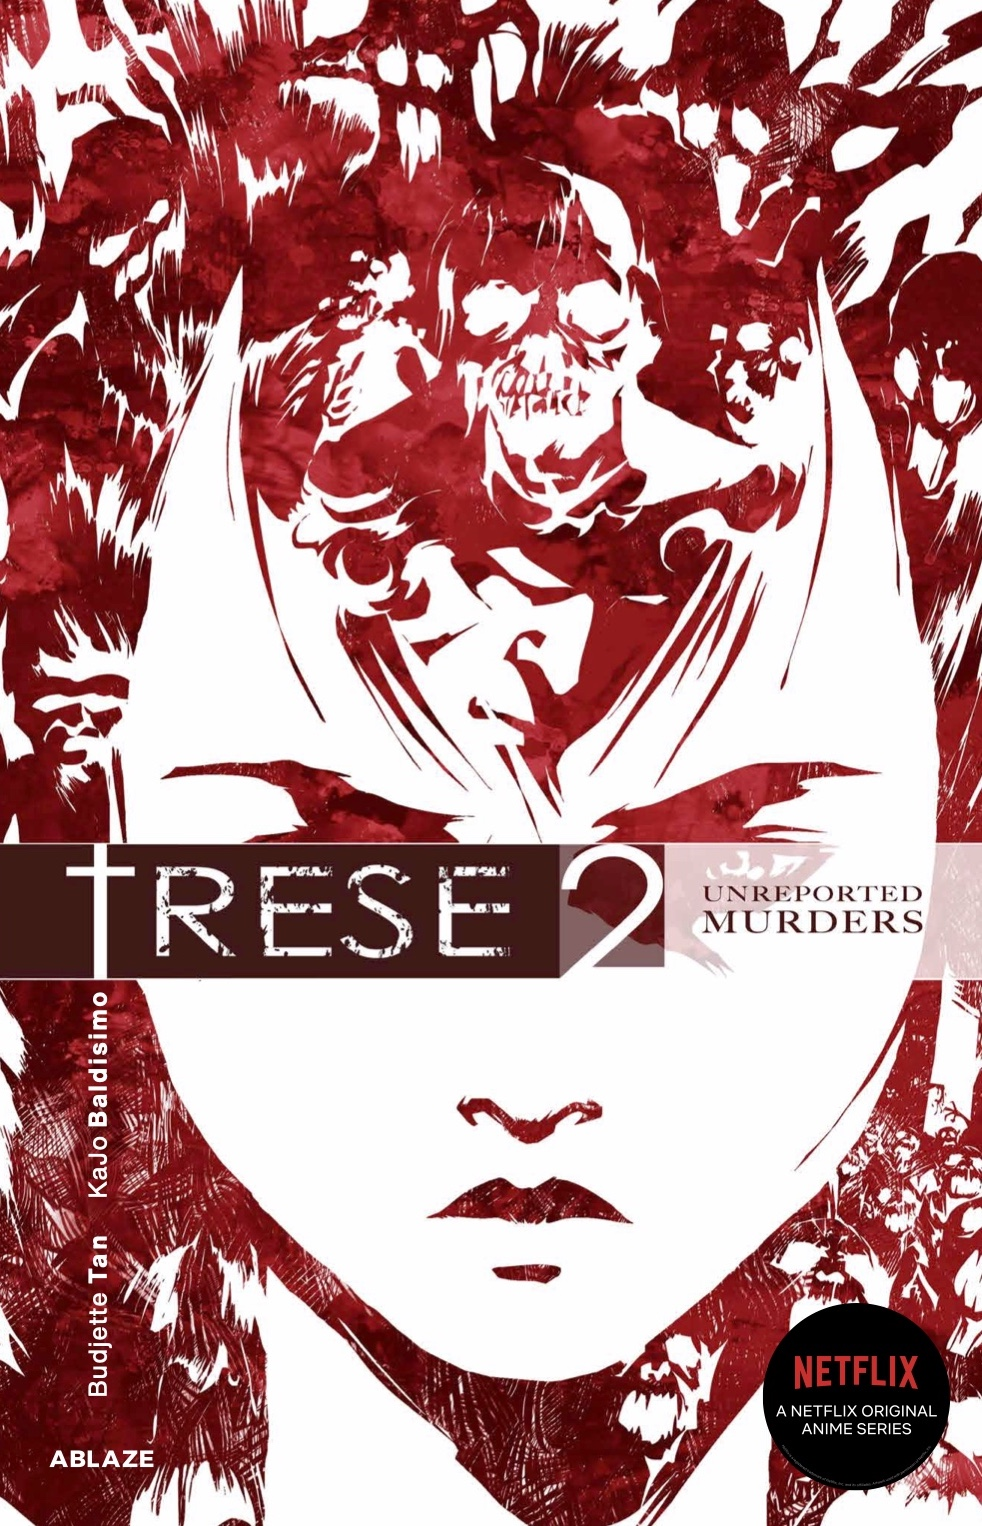 TRESE GN VOL 2 COVER